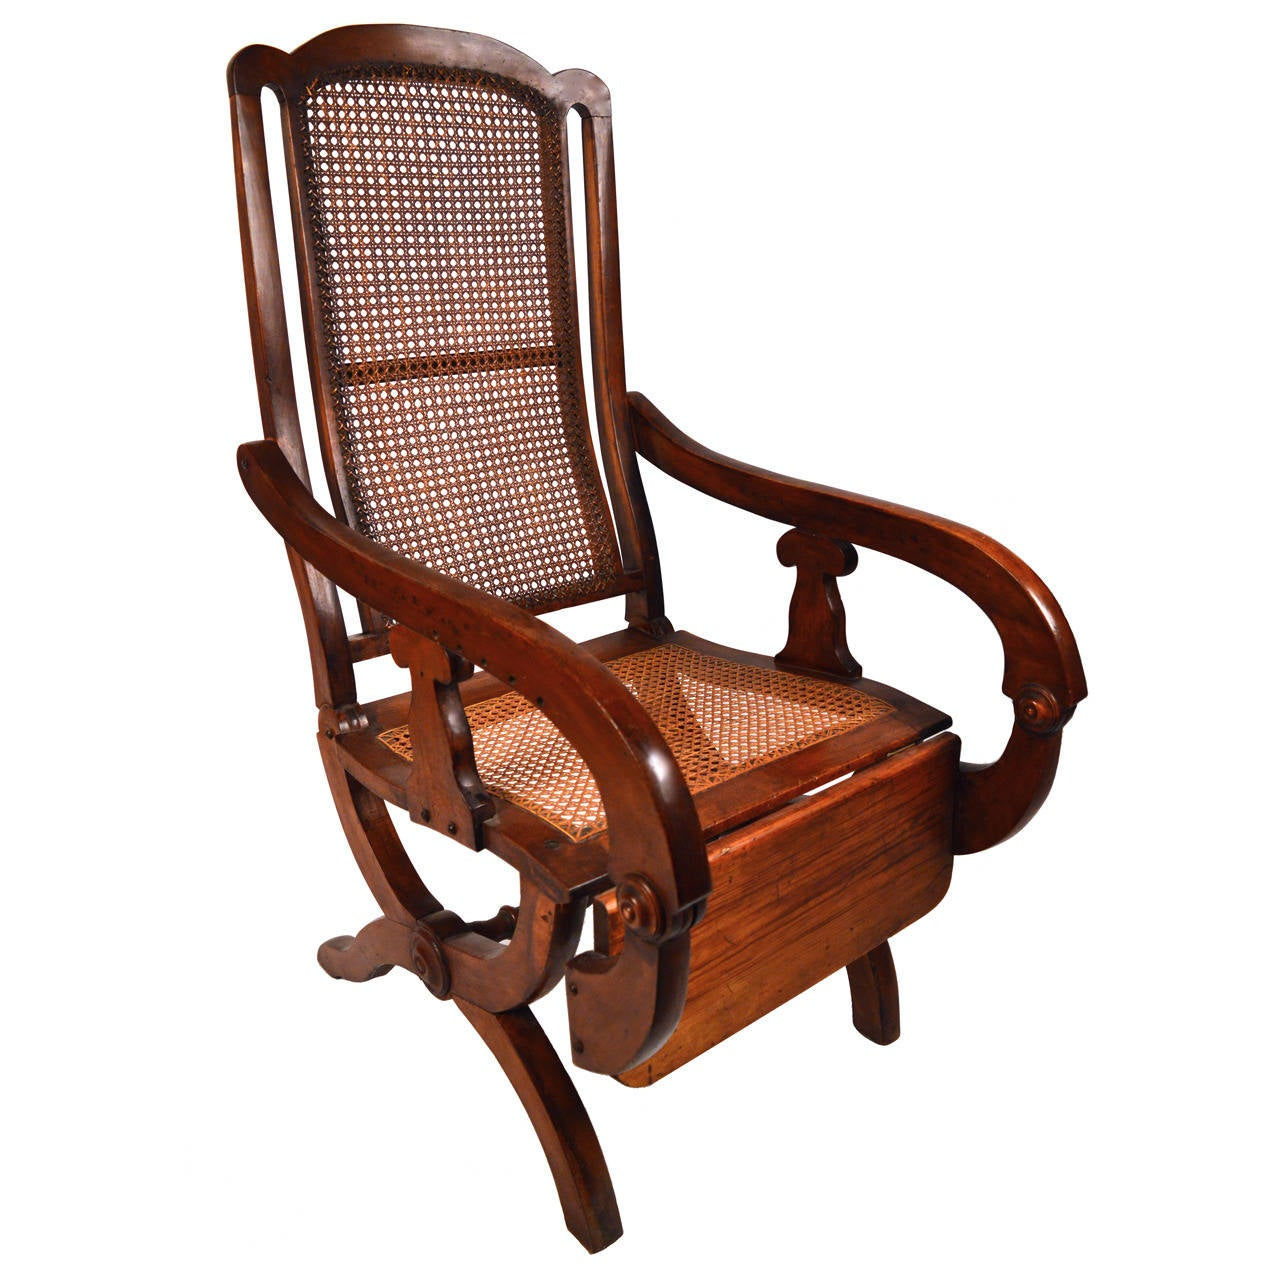 reclining chairs for sale chromcraft kitchen 19th century british colonial chair at